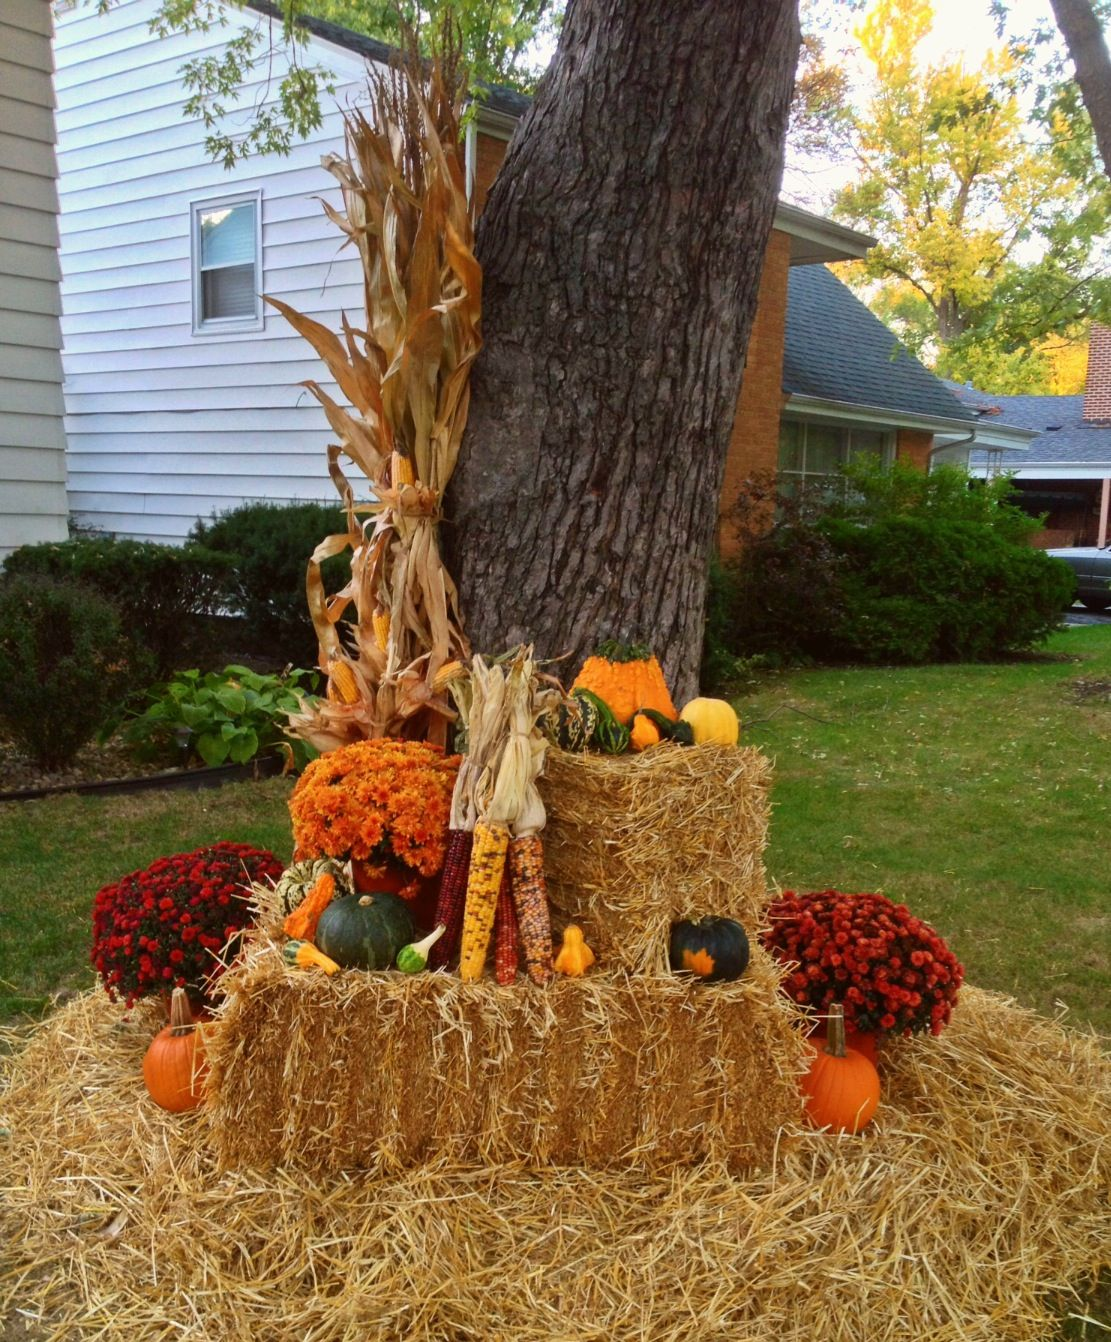 Autumn Yard Decorations: Fall Decor, Corn Stalk, Indian Corn, Pumpkins, Gourds